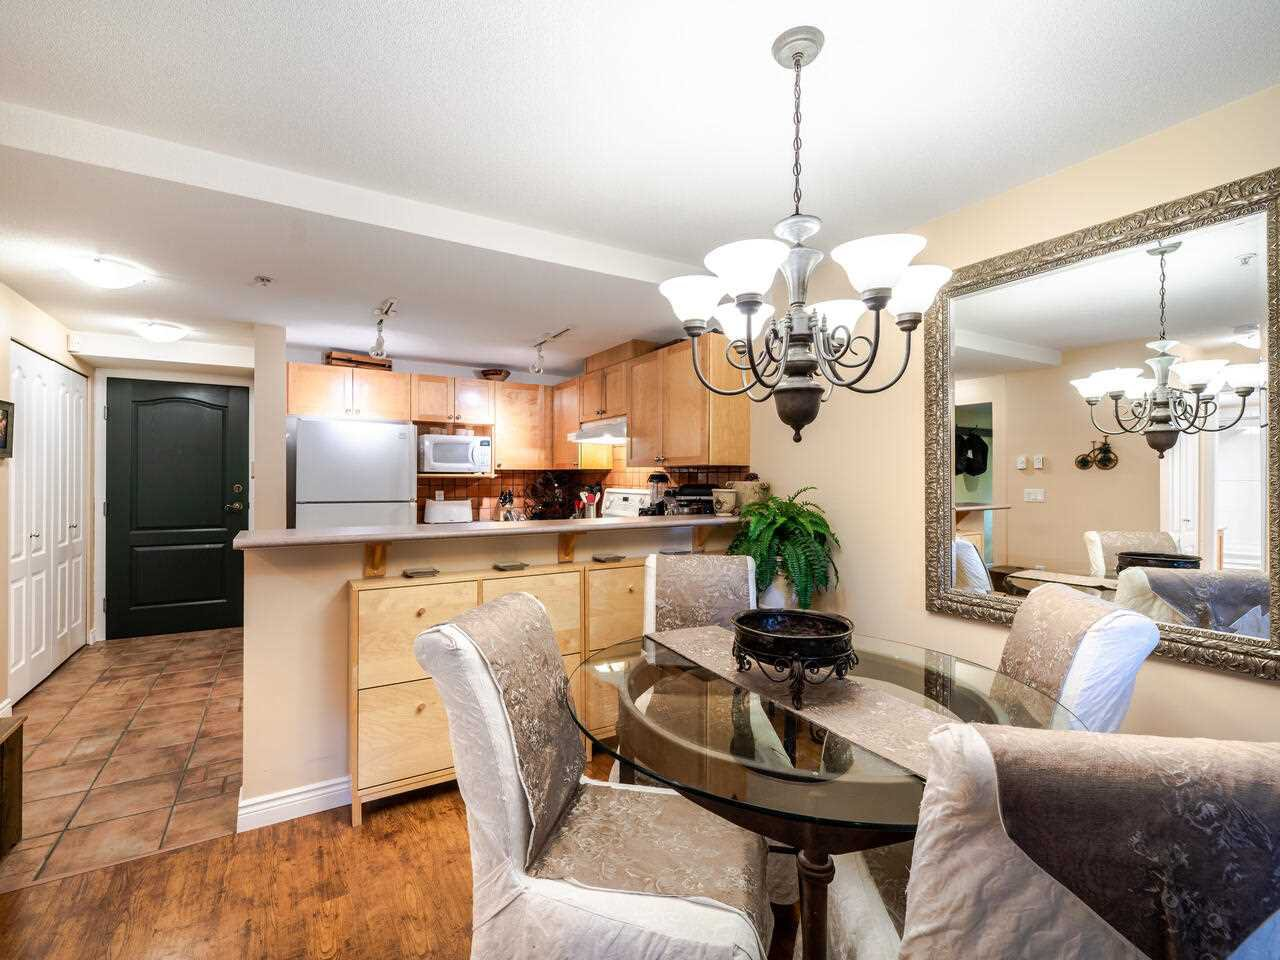 "Main Photo: 9 3036 W 4TH Avenue in Vancouver: Kitsilano Condo for sale in ""SANTA BARBARA"" (Vancouver West)  : MLS®# R2518468"